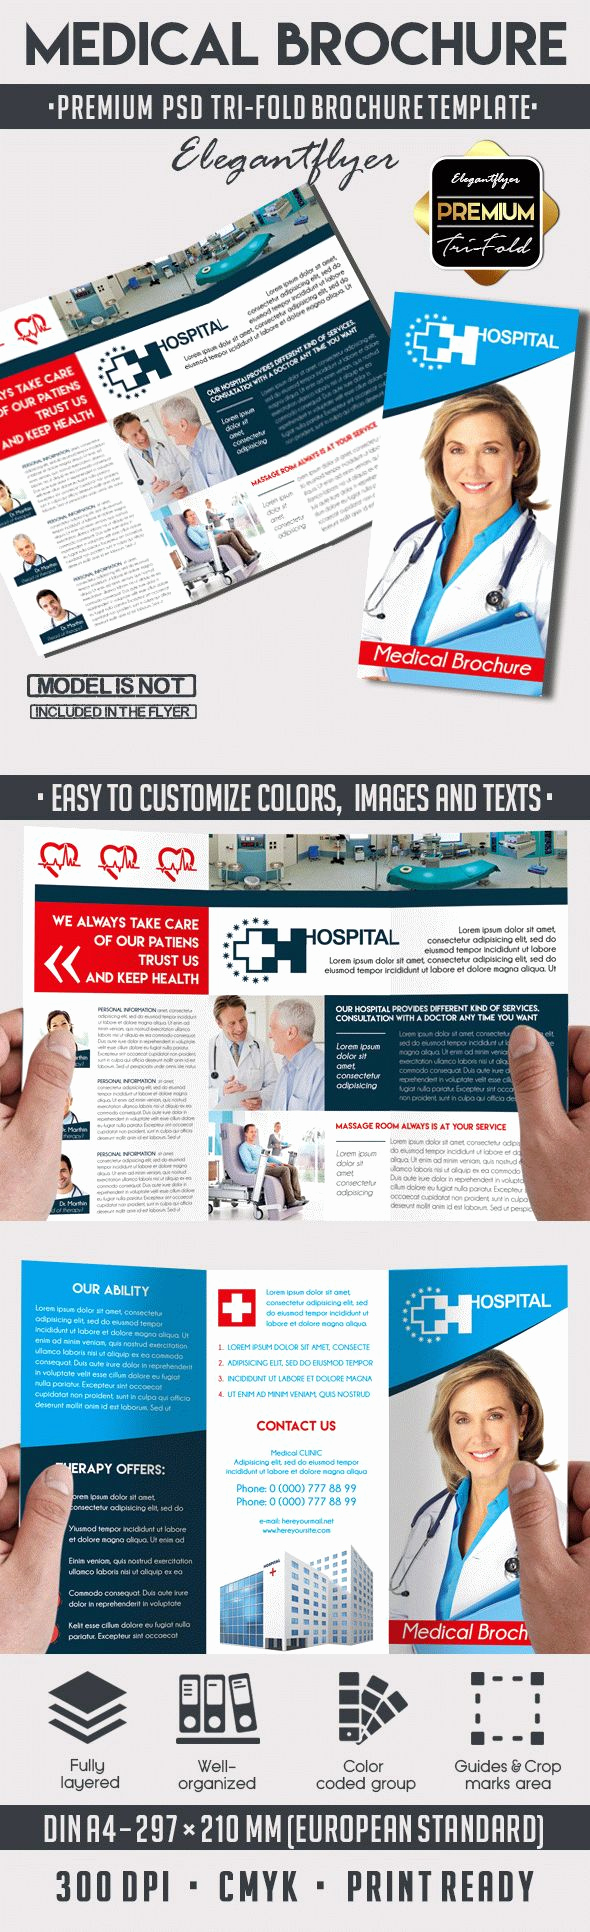 Tri Fold Brochure Template Psd Awesome Medical Tri Fold Psd Brochure Template – by Elegantflyer